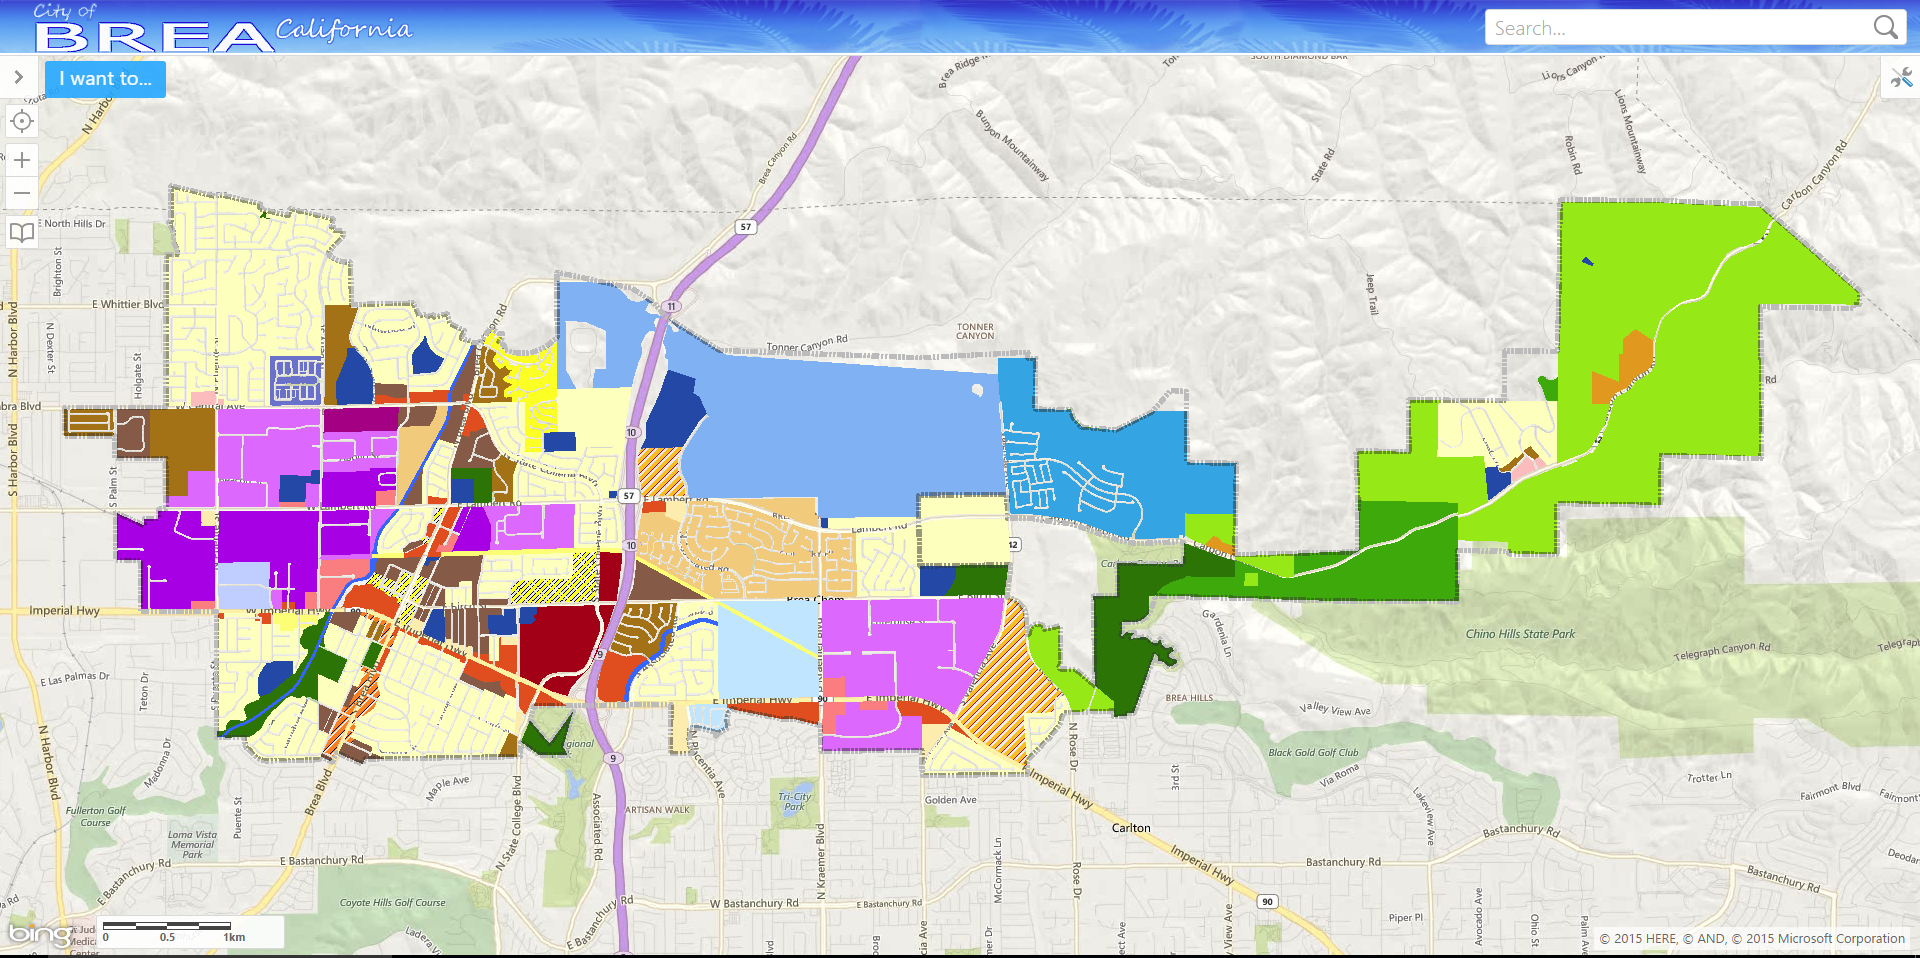 Zoning Interactive Map.PNG Opens in new window